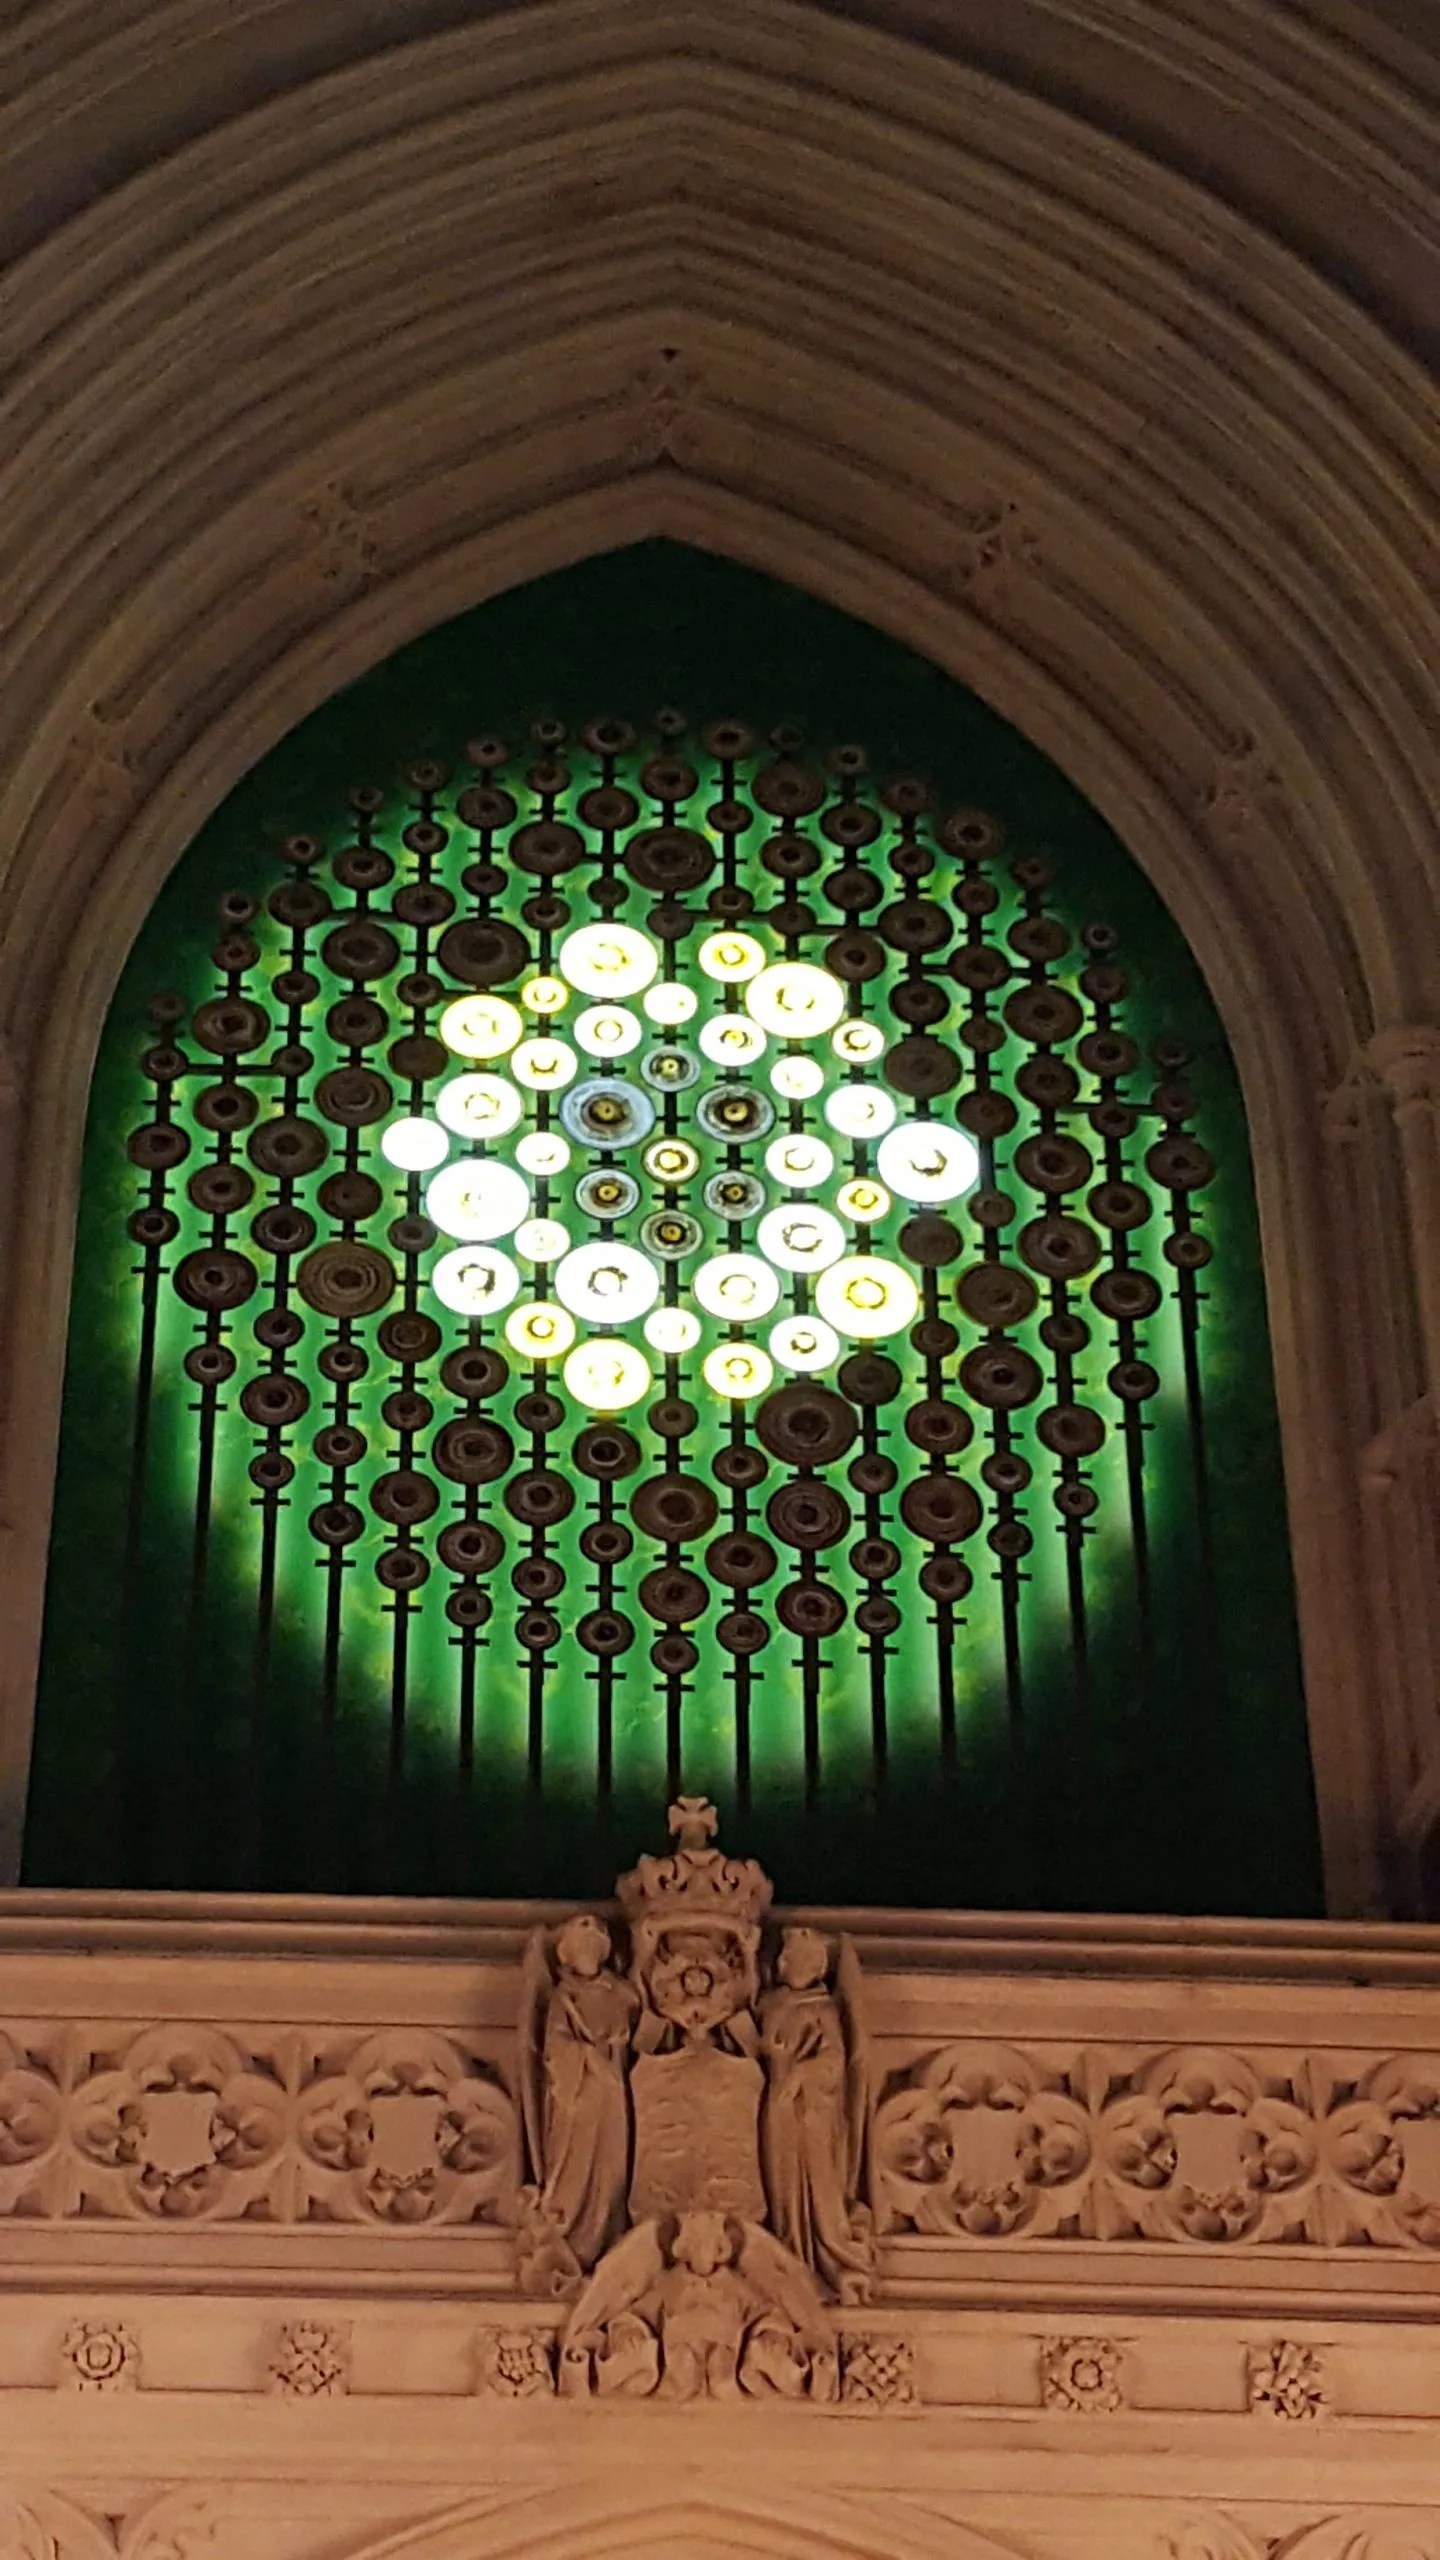 New Dawn Light Sculpture by Mary Branson in the Palace of Westminster